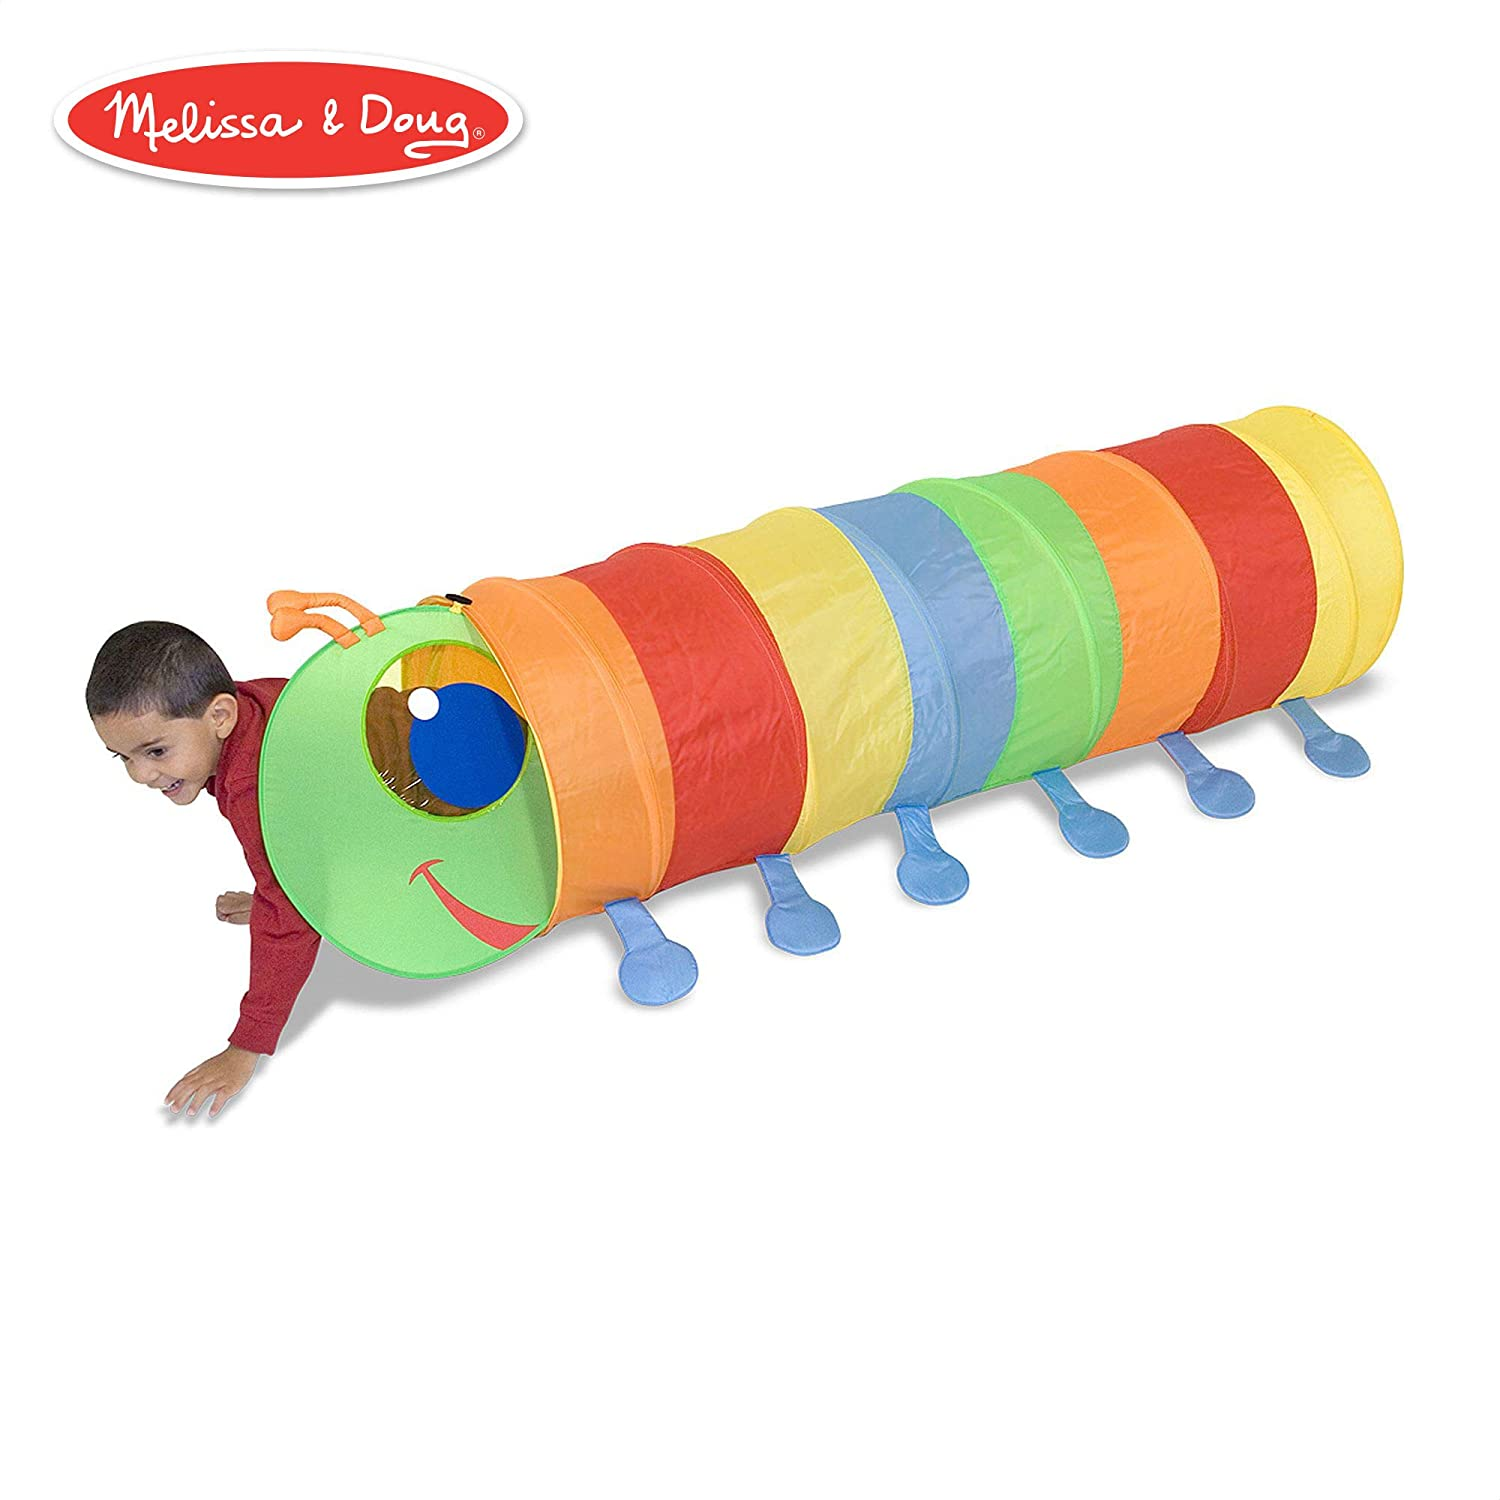 7 Best Crawling Tunnels for Toddlers Reviews of 2021 10